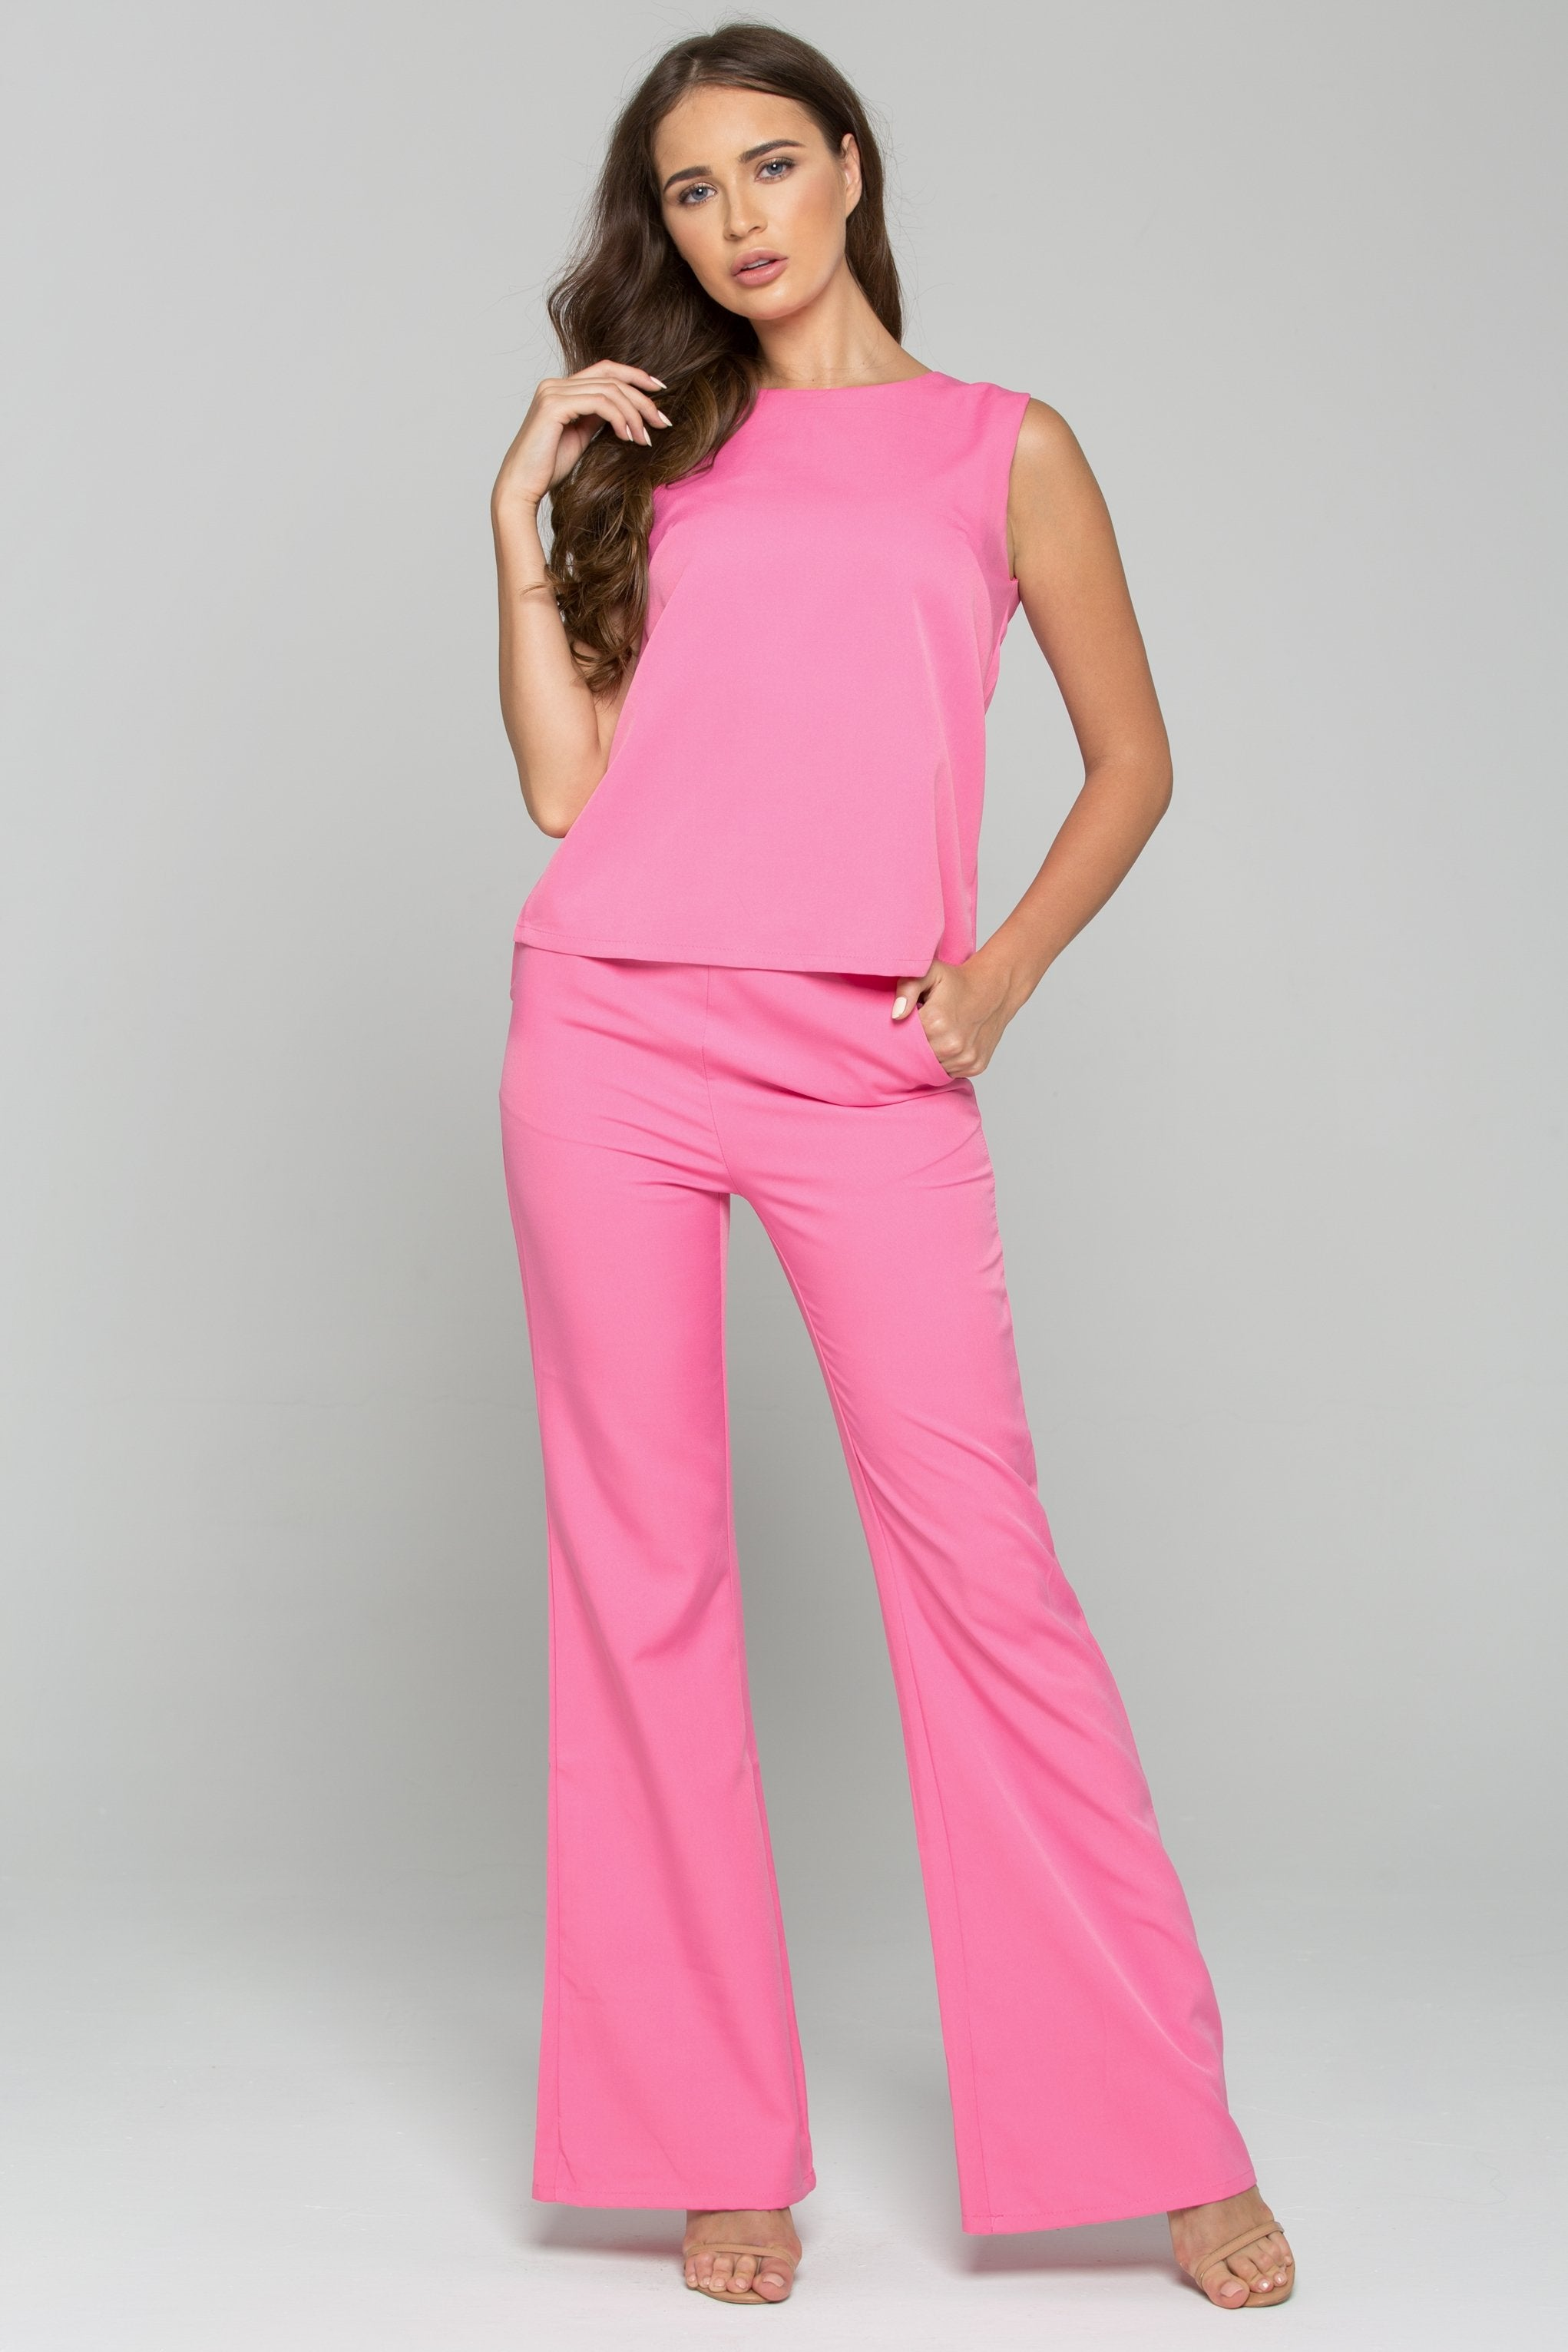 Hot Pink Sleeveless Top and Trousers Co-ord